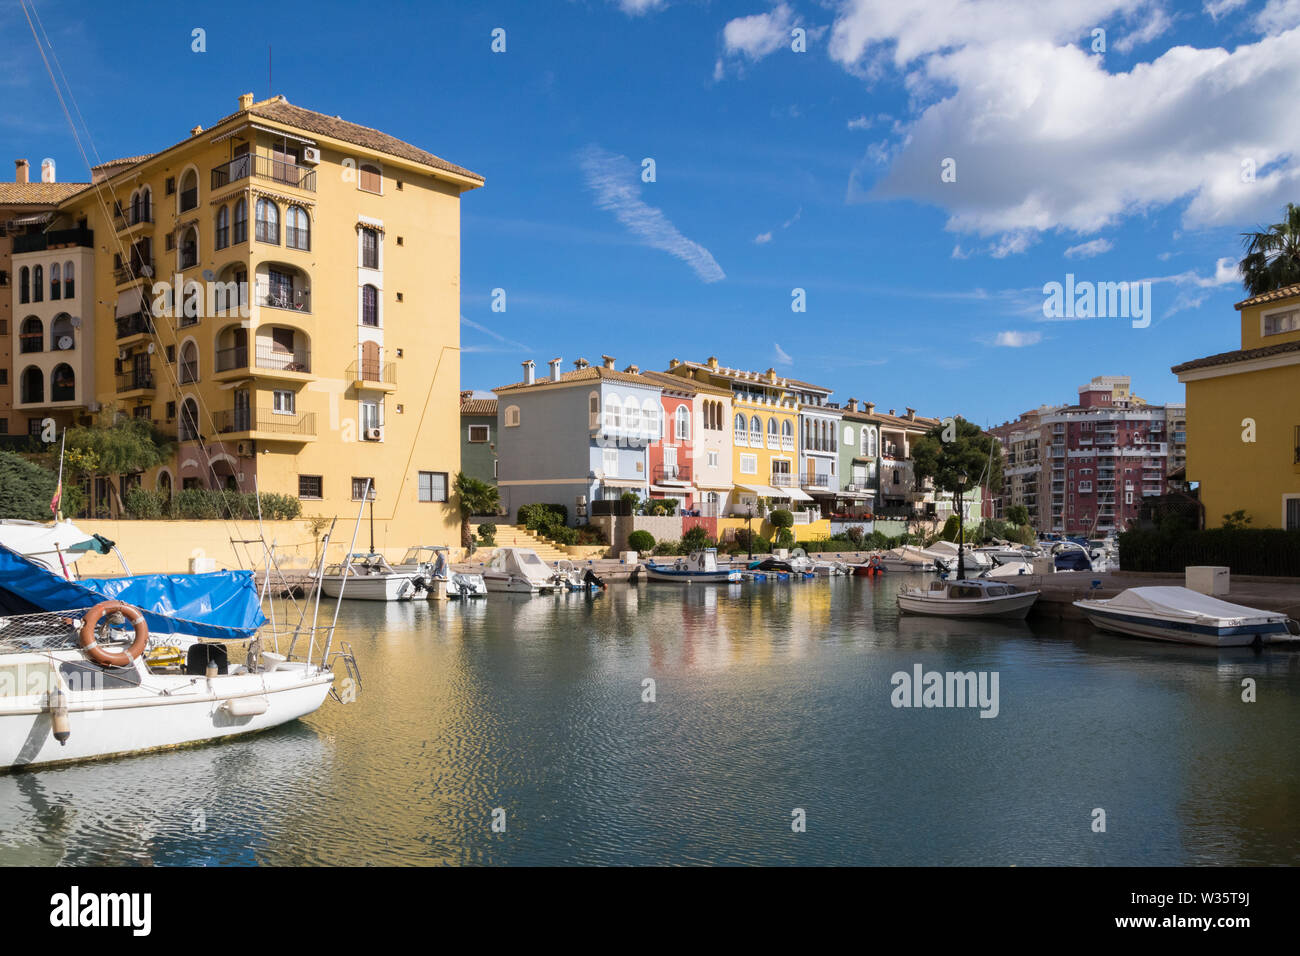 colorful houses and boats in Port Saplaya, Valencia (Spain) - Stock Image